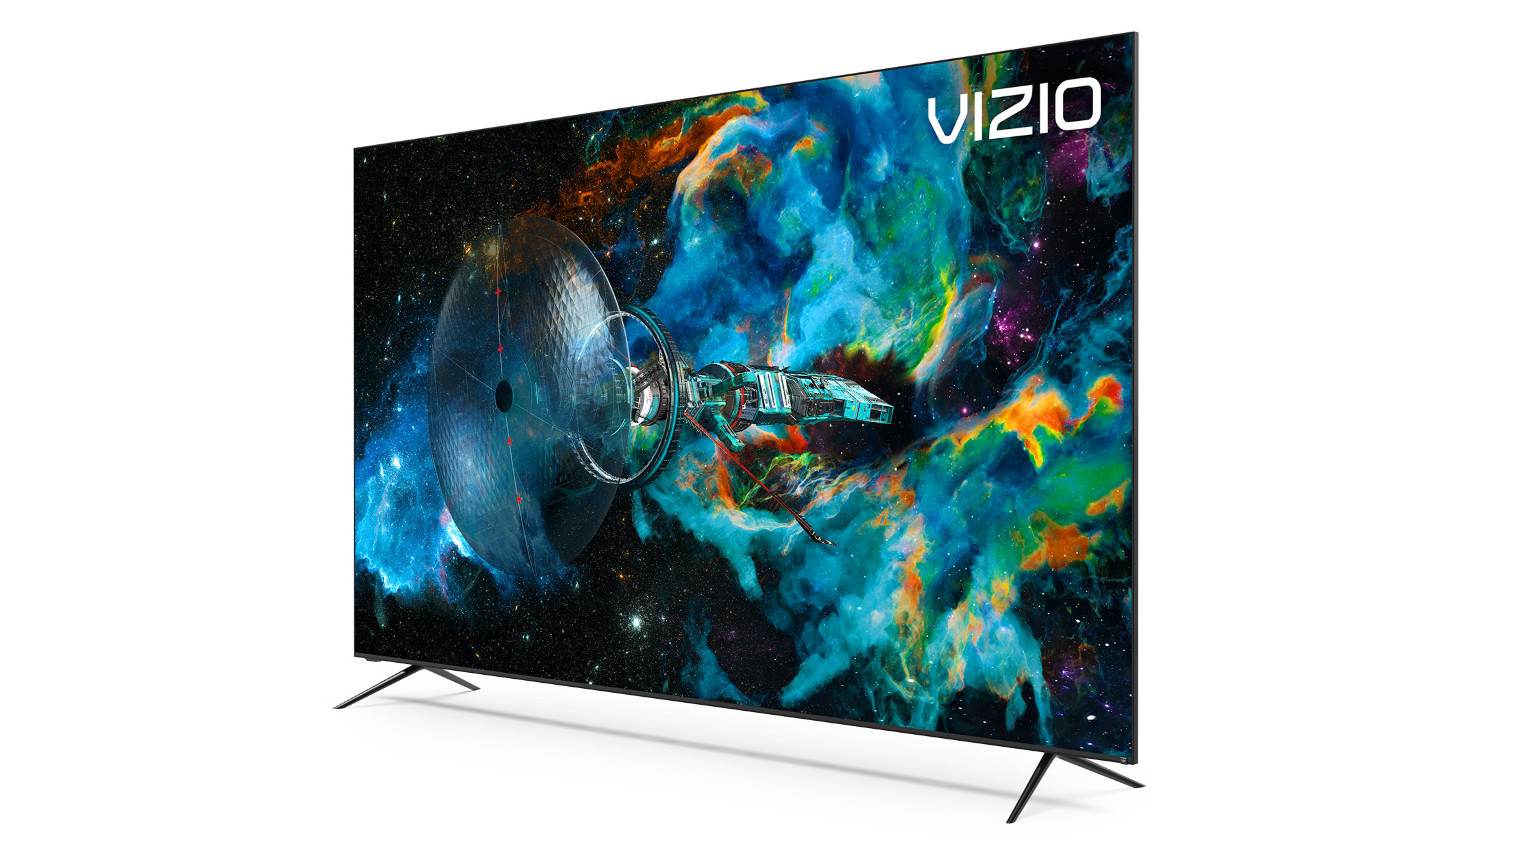 A promotional image demonstrating the screen of the Vizio P-Series Quantum X